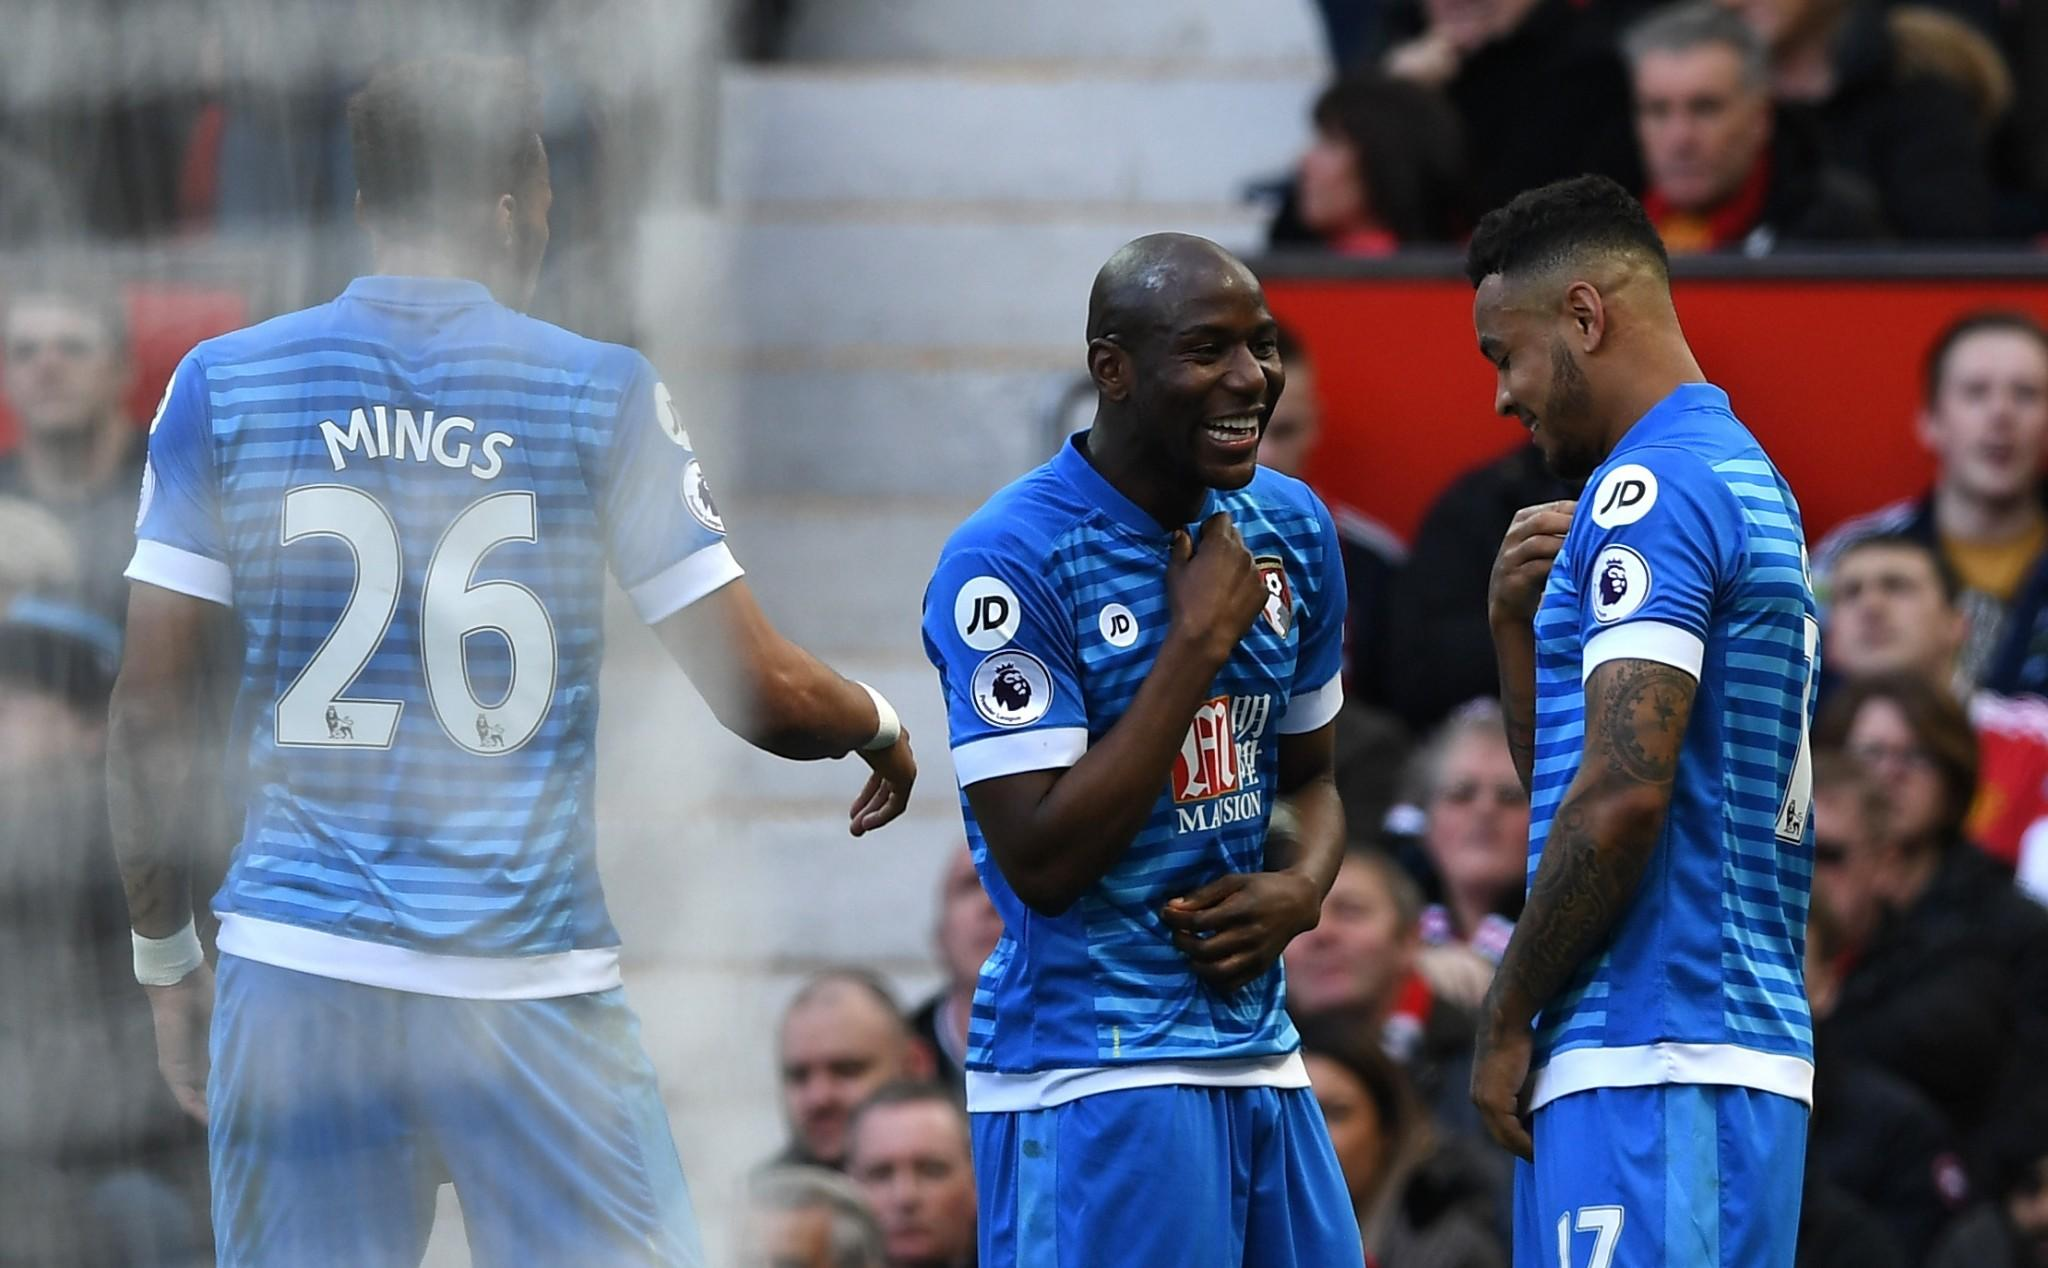 Bournemouth 2 – Manchester United 1 | Casino.com